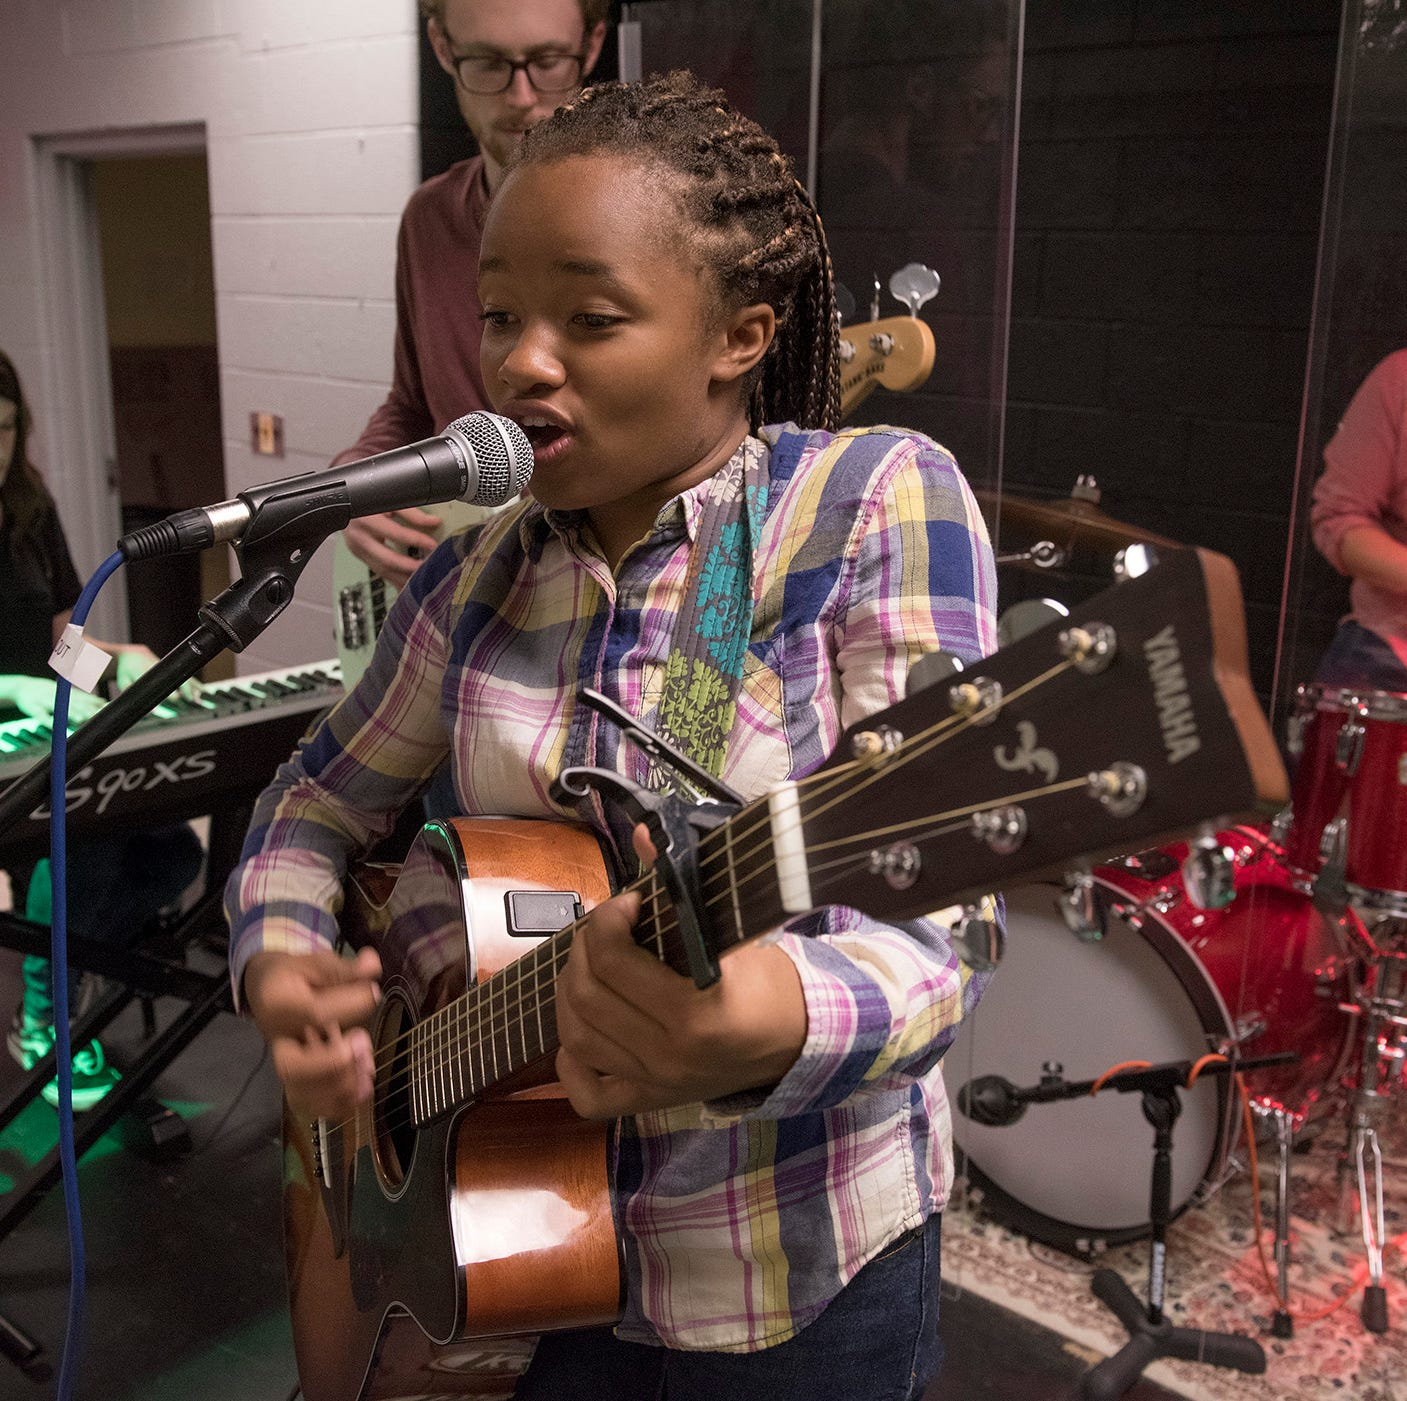 In The Band gives young musicians chance to hone tunes